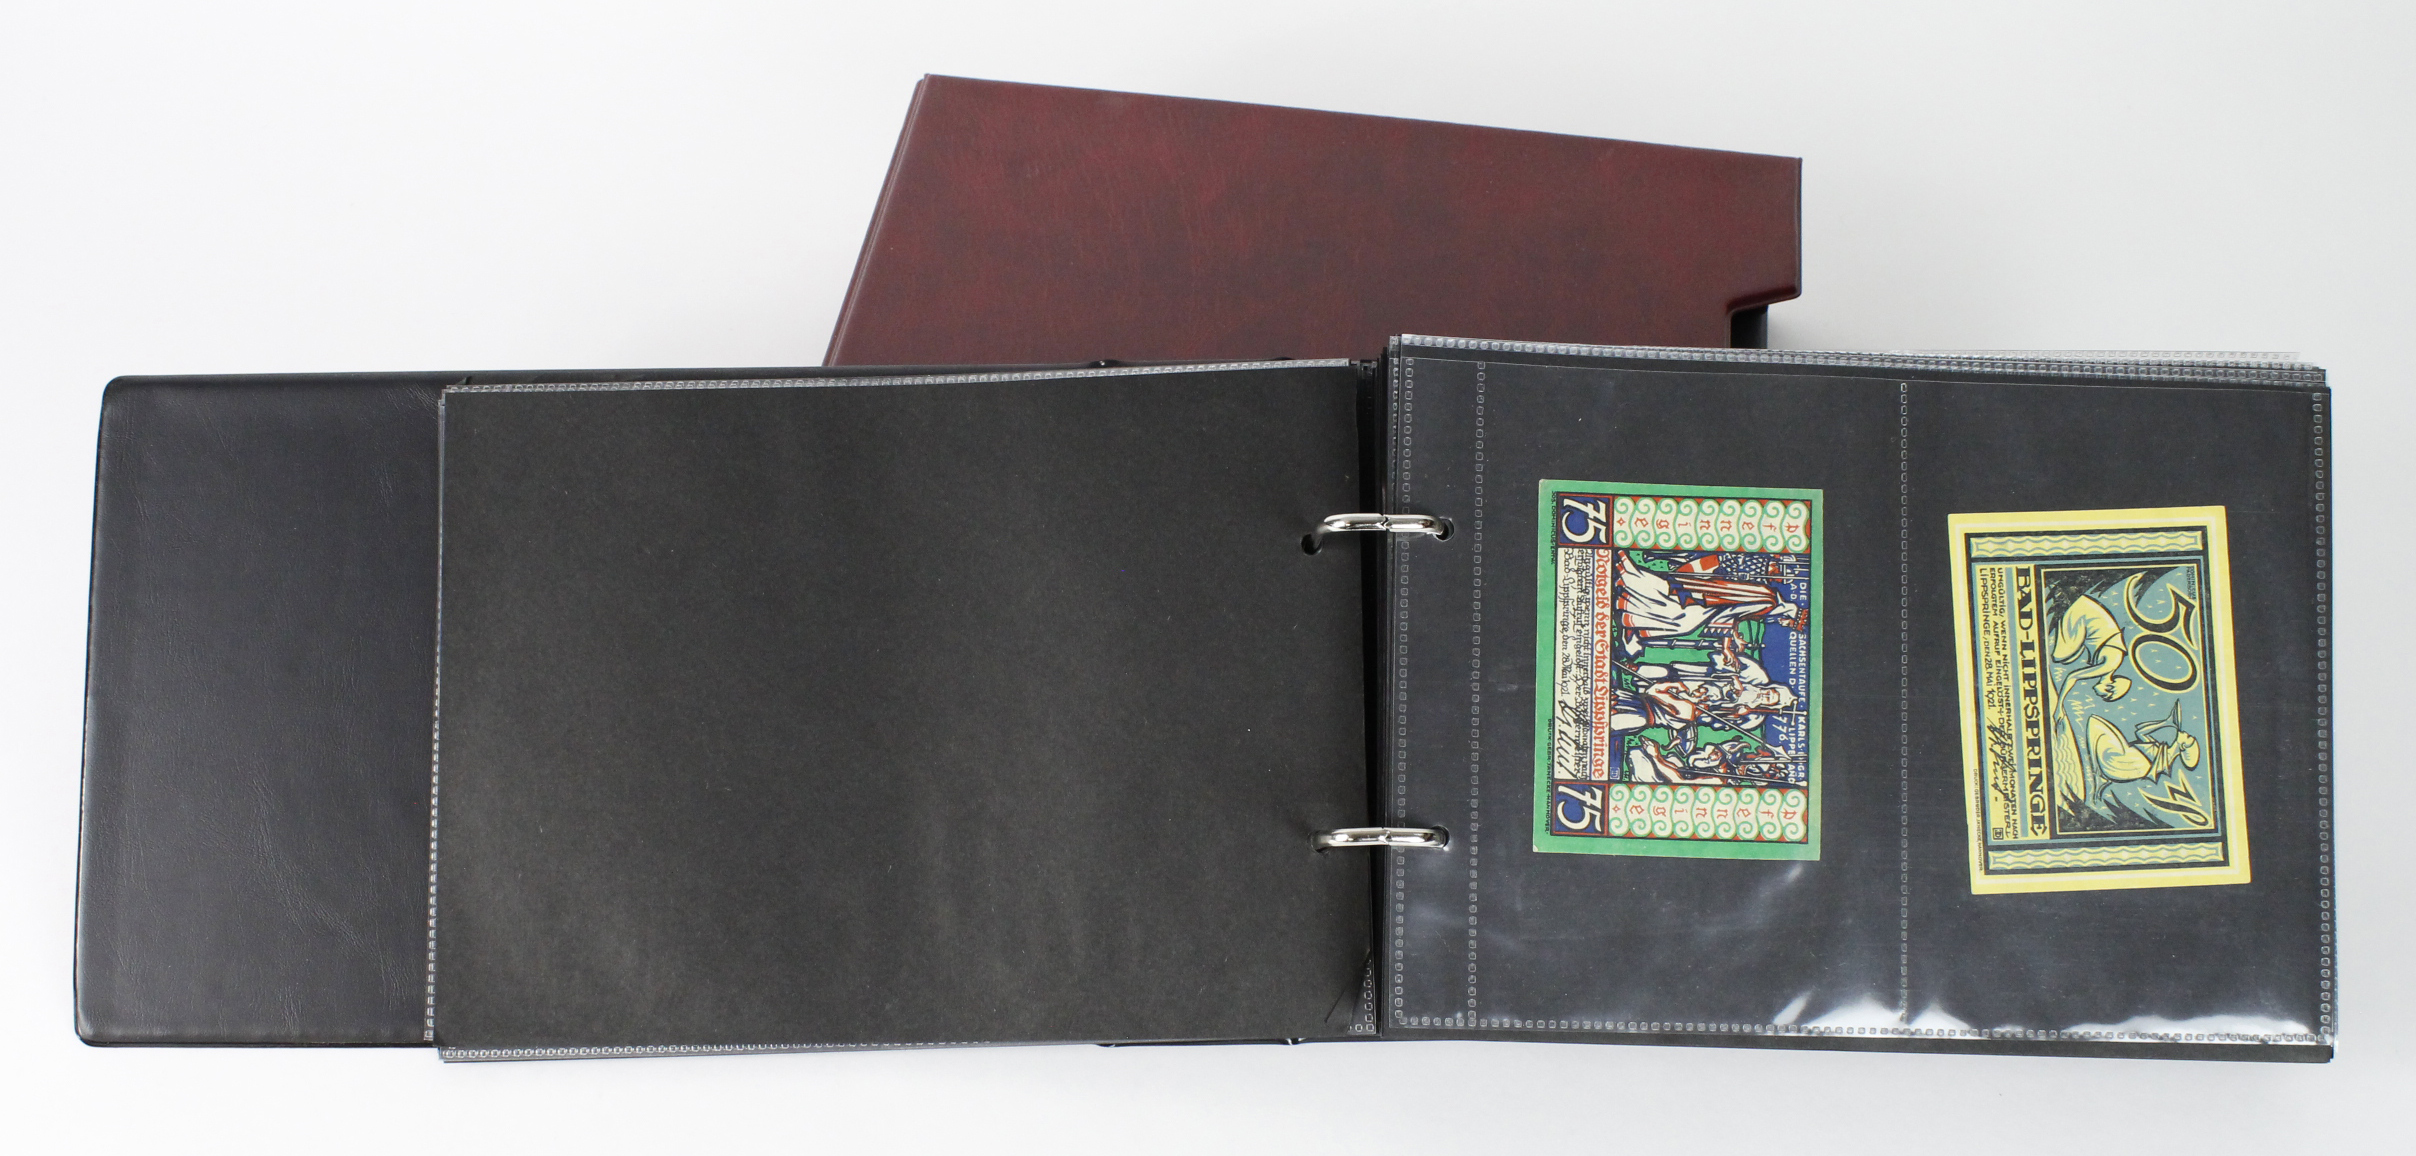 Germany Notgeld (203), a mixed collection of town/city sets and individual notes in a Notgeld album,